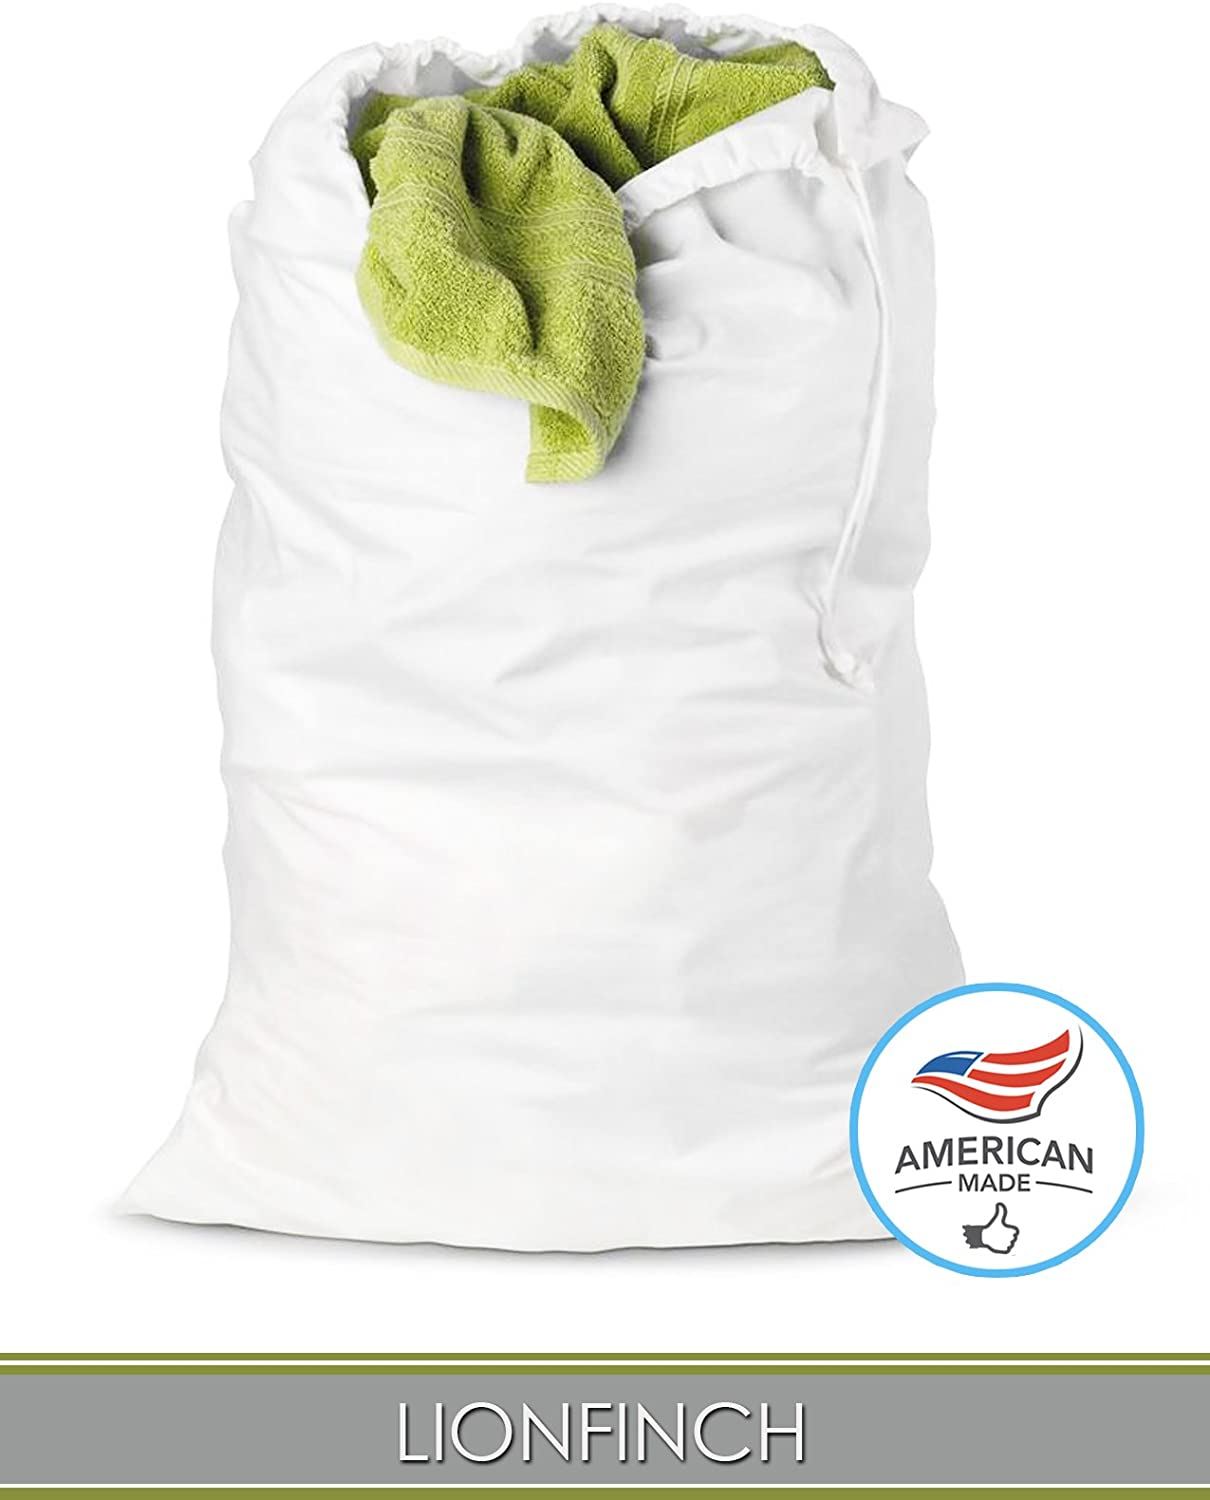 "LionFinch Heavy Duty Laundry Bag or Hamper Liner. Extra Large 38"" Tall x 28"" Wide. Bright White Super Soft Canvas. Fits 5 Loads of Laundry and Easy to Wash and Dry. Proudly Made in California!"